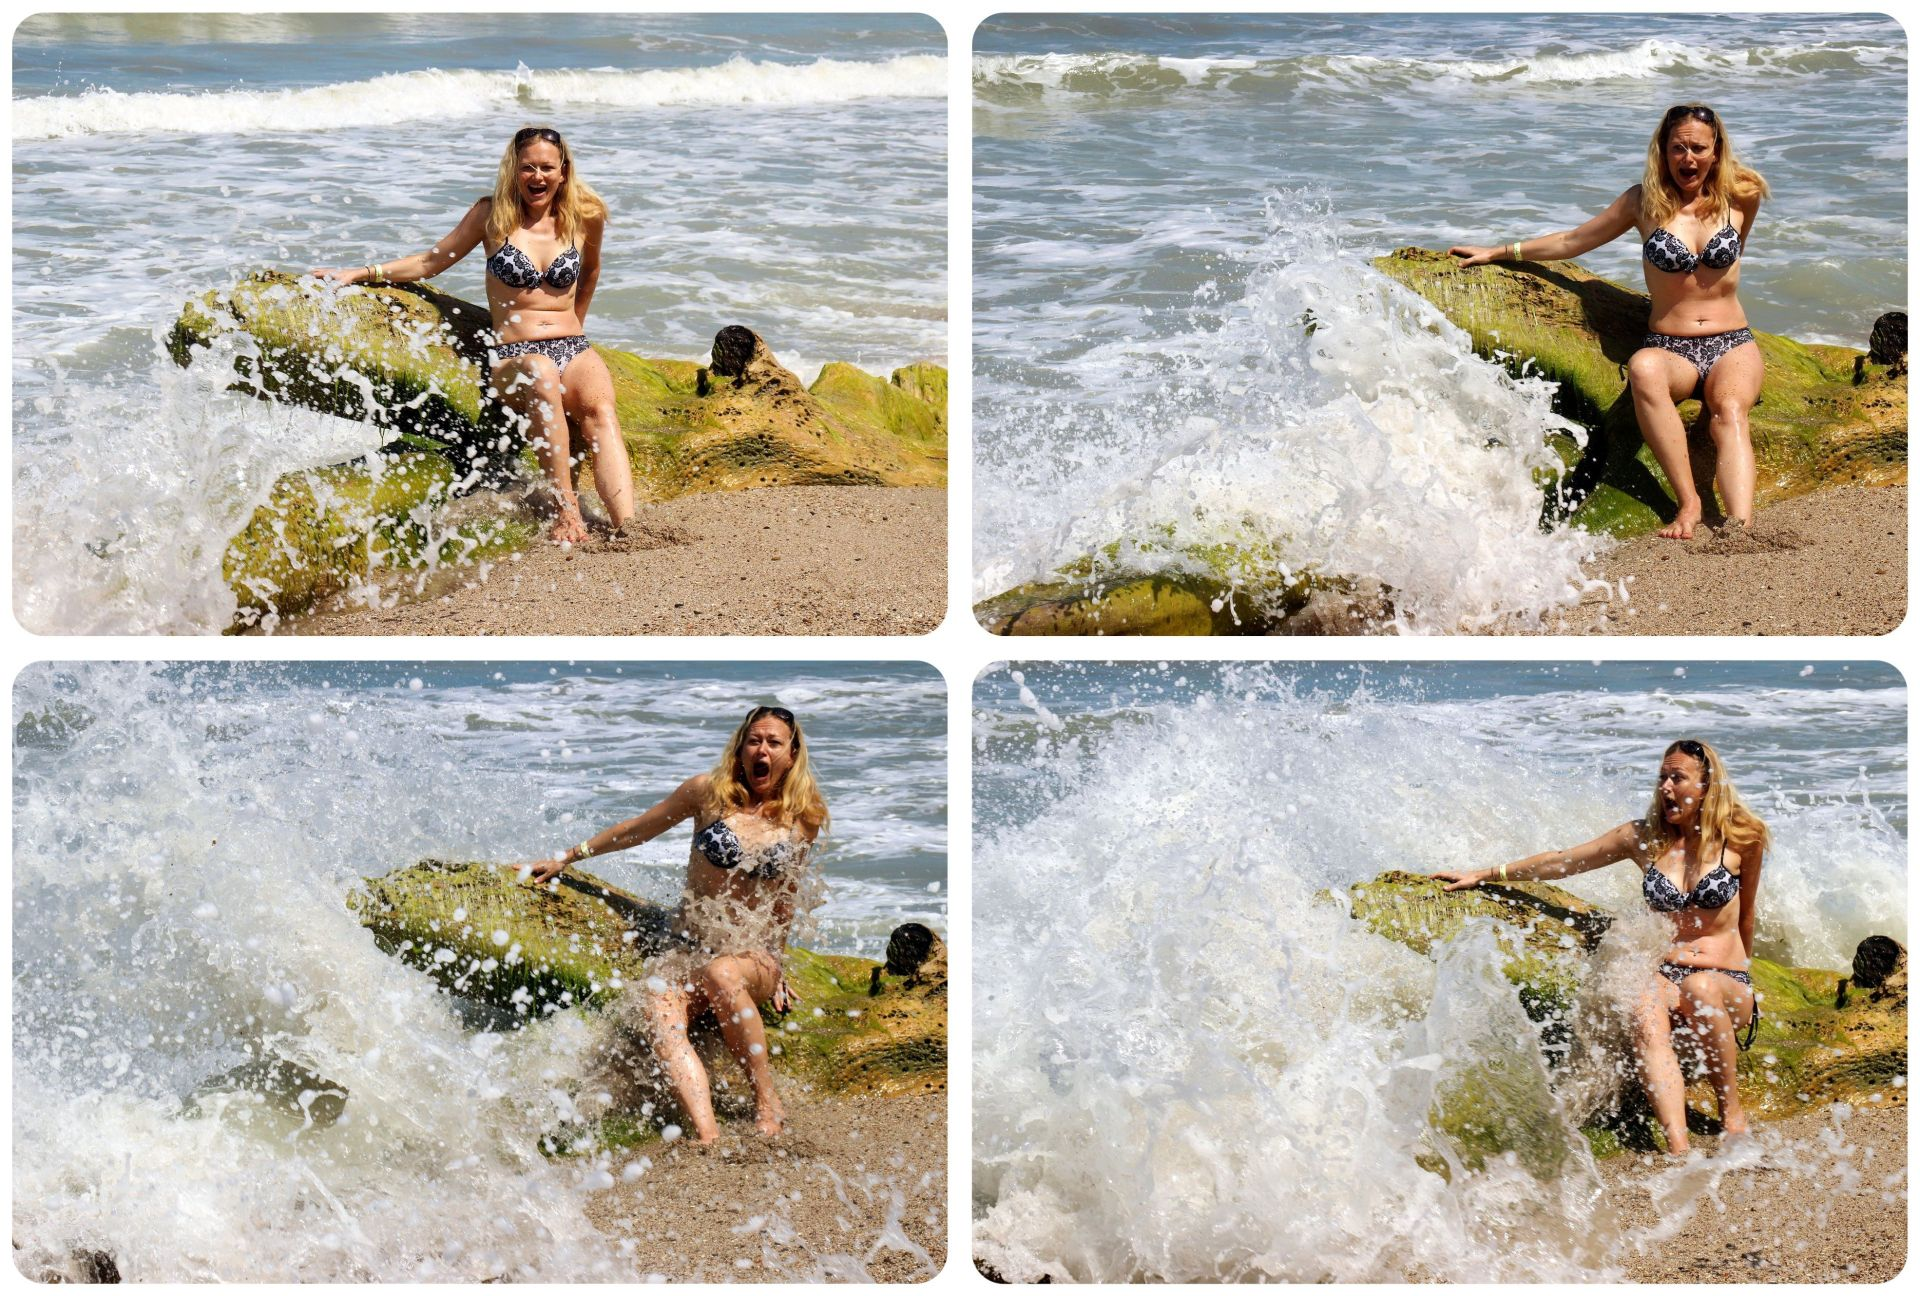 Dani caught by waves